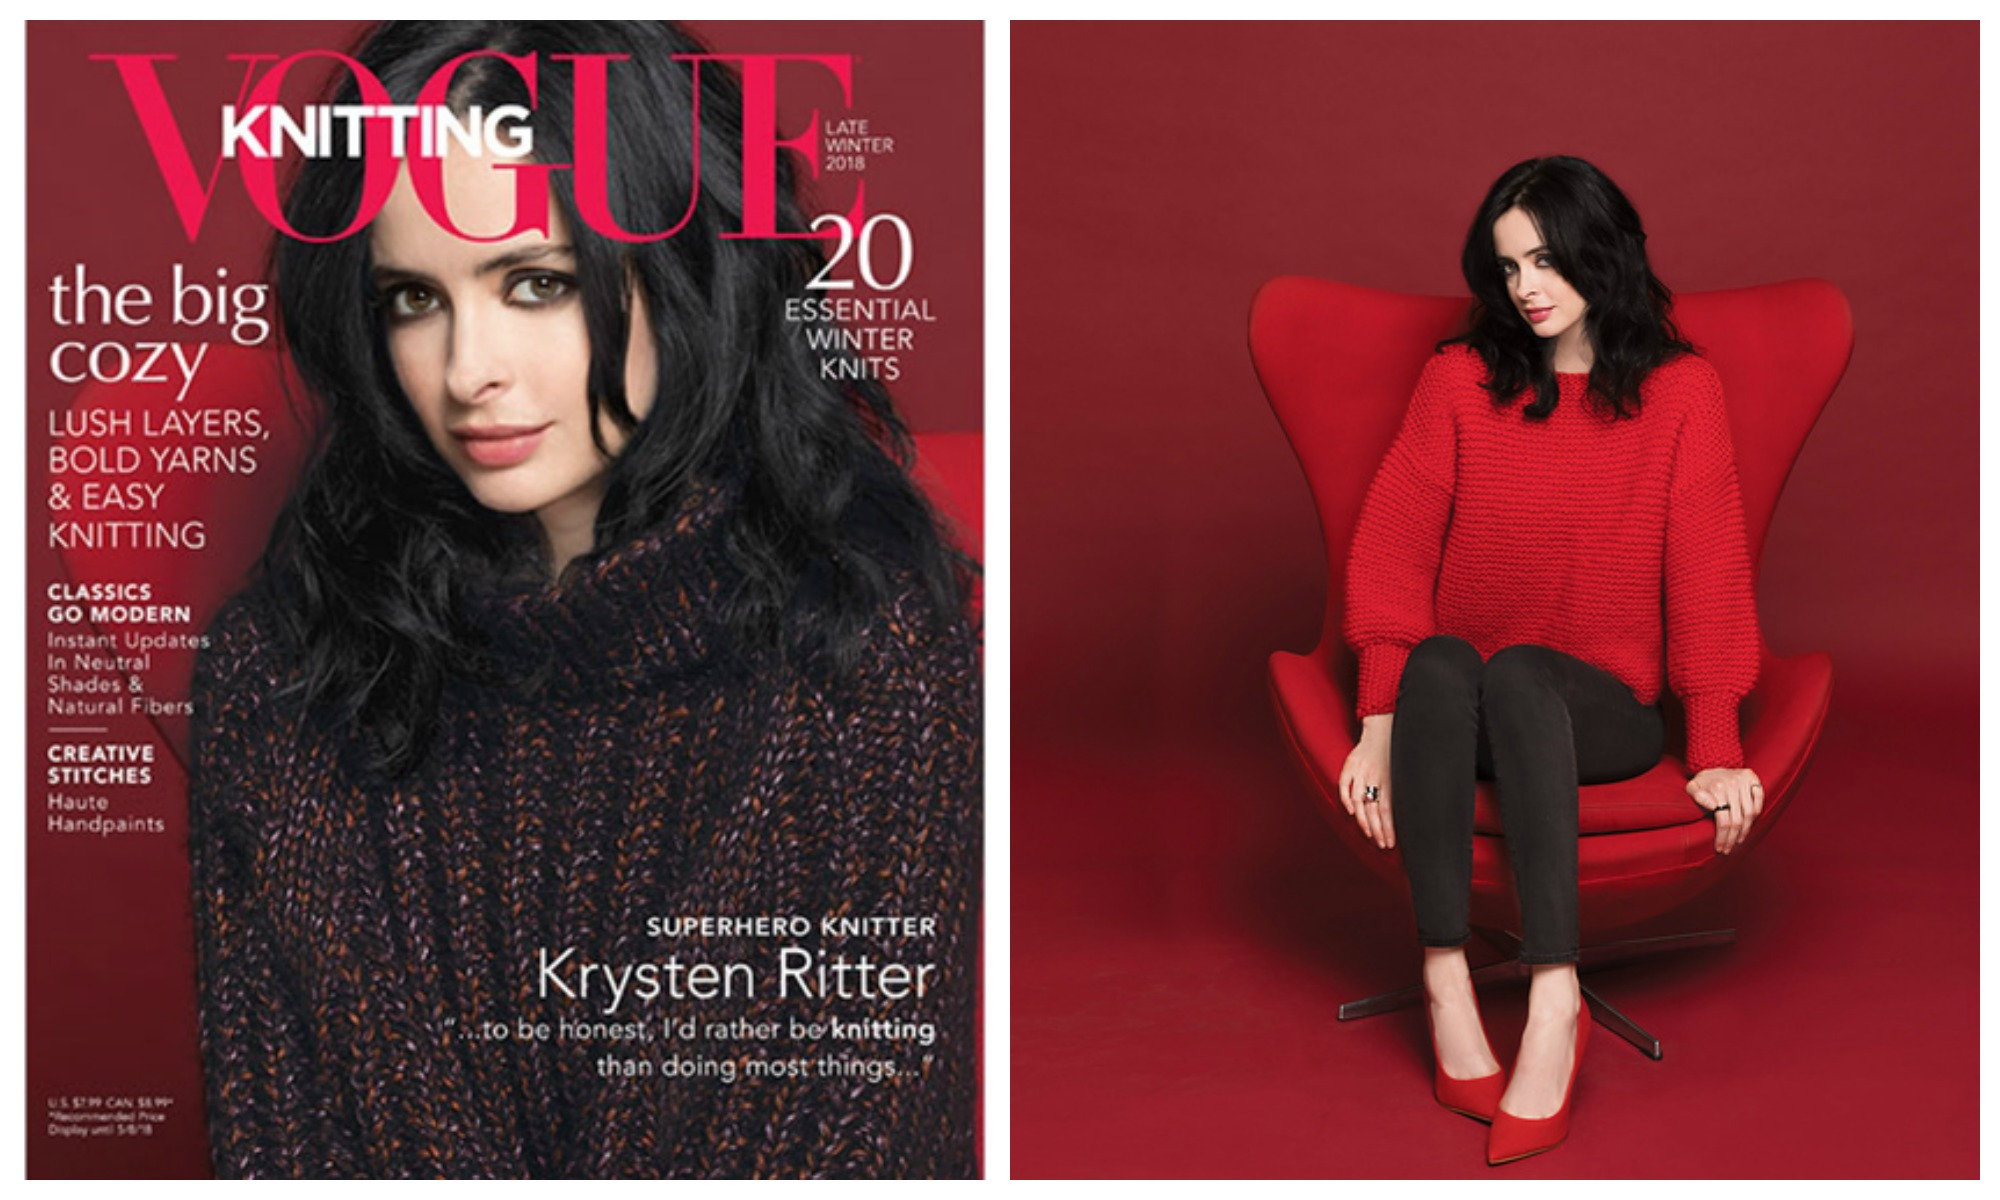 Knit the Sizzling Sweater Krysten Ritter Wears in the Latest Issue ...